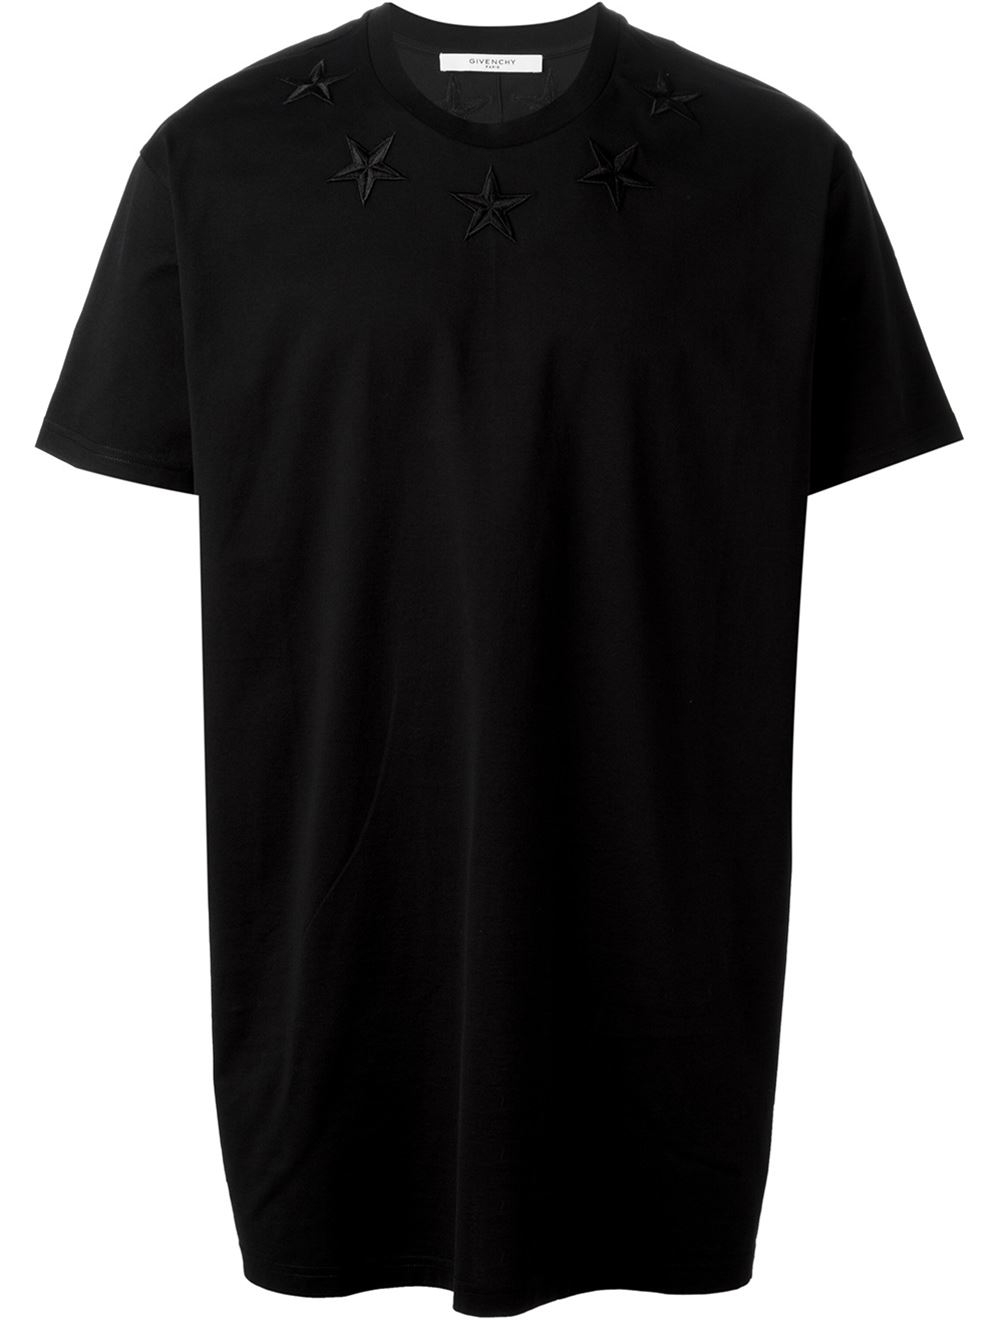 Very Lyst - Givenchy Star-Embroidered Cotton T-Shirt in Black for Men LL39